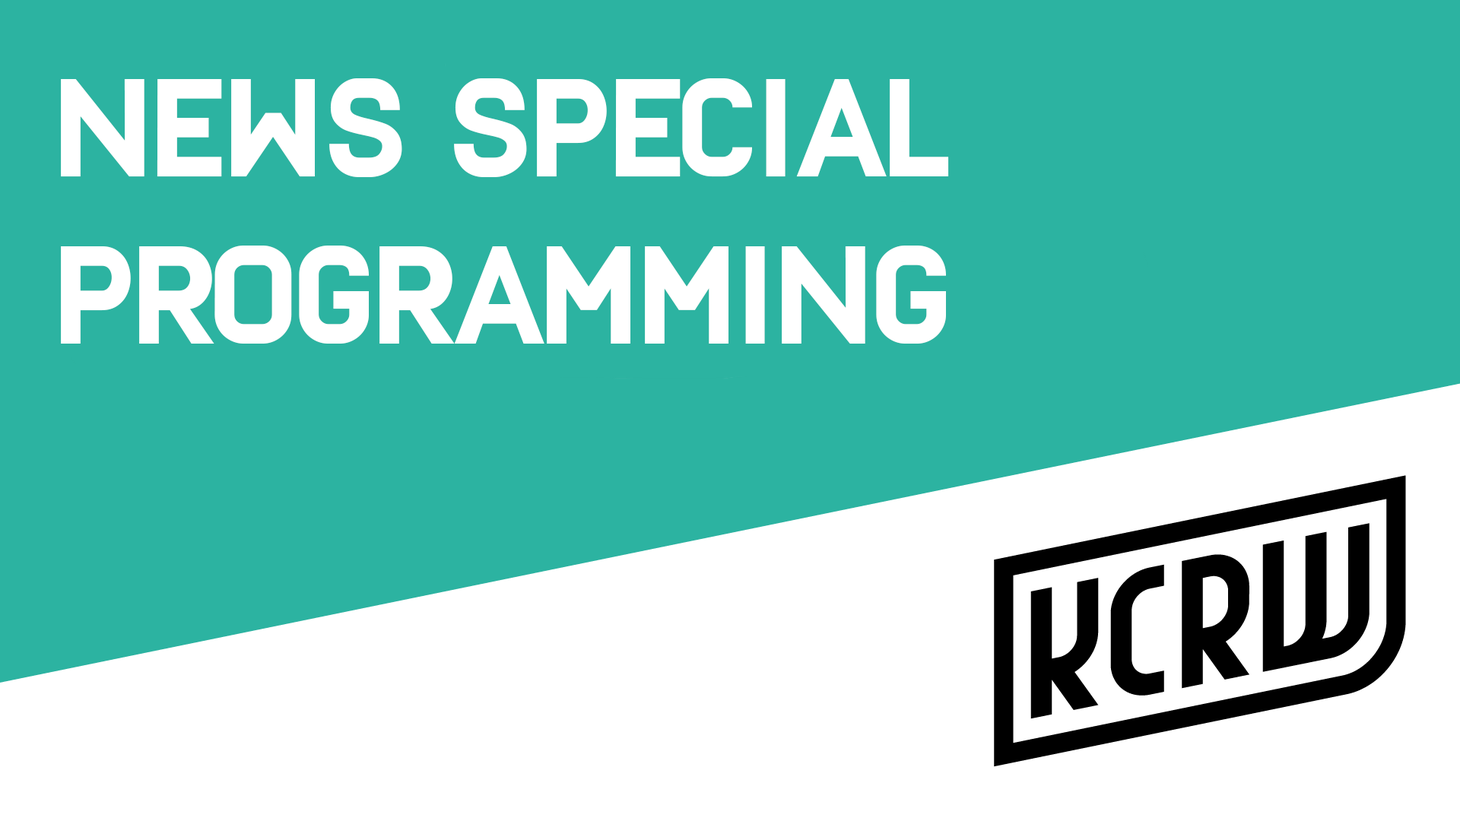 Listen to live confirmation hearings on Judge Sonia Sotomayor's nomination to the US Supreme Court on KCRW.com. KCRW News will broadcast the hearings all week, beginning at 7am.